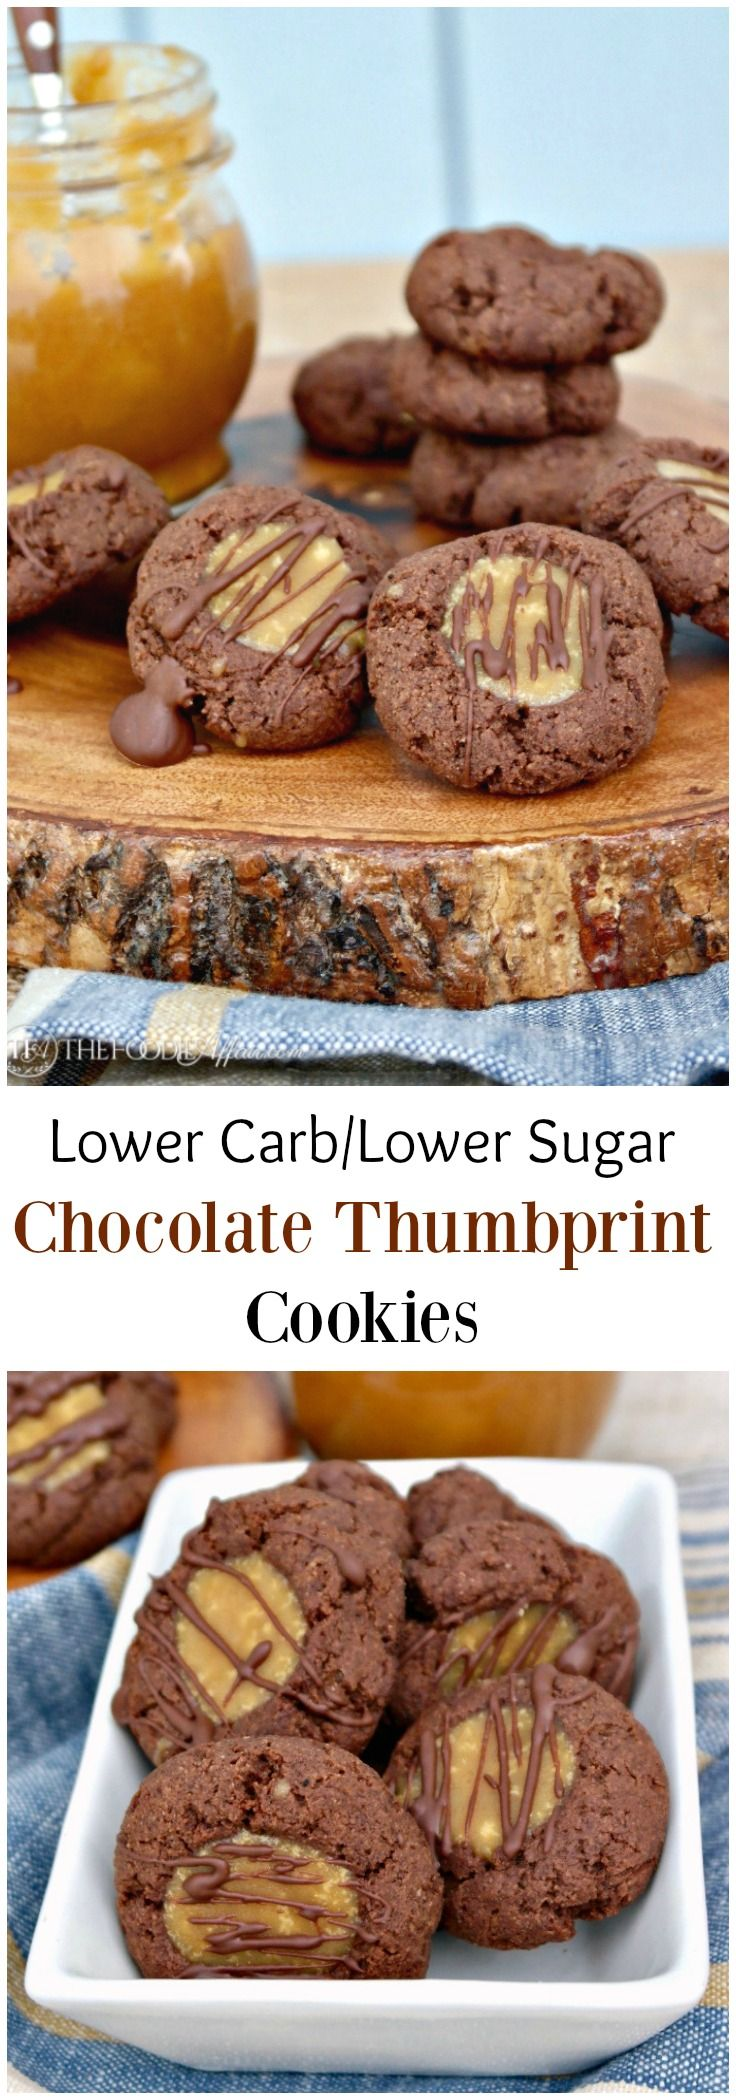 Low carb chocolate thumbprint cookies with a low sugar caramel filling topped with a drizzle of chocolate. Each cookie is about 7 carbs each.